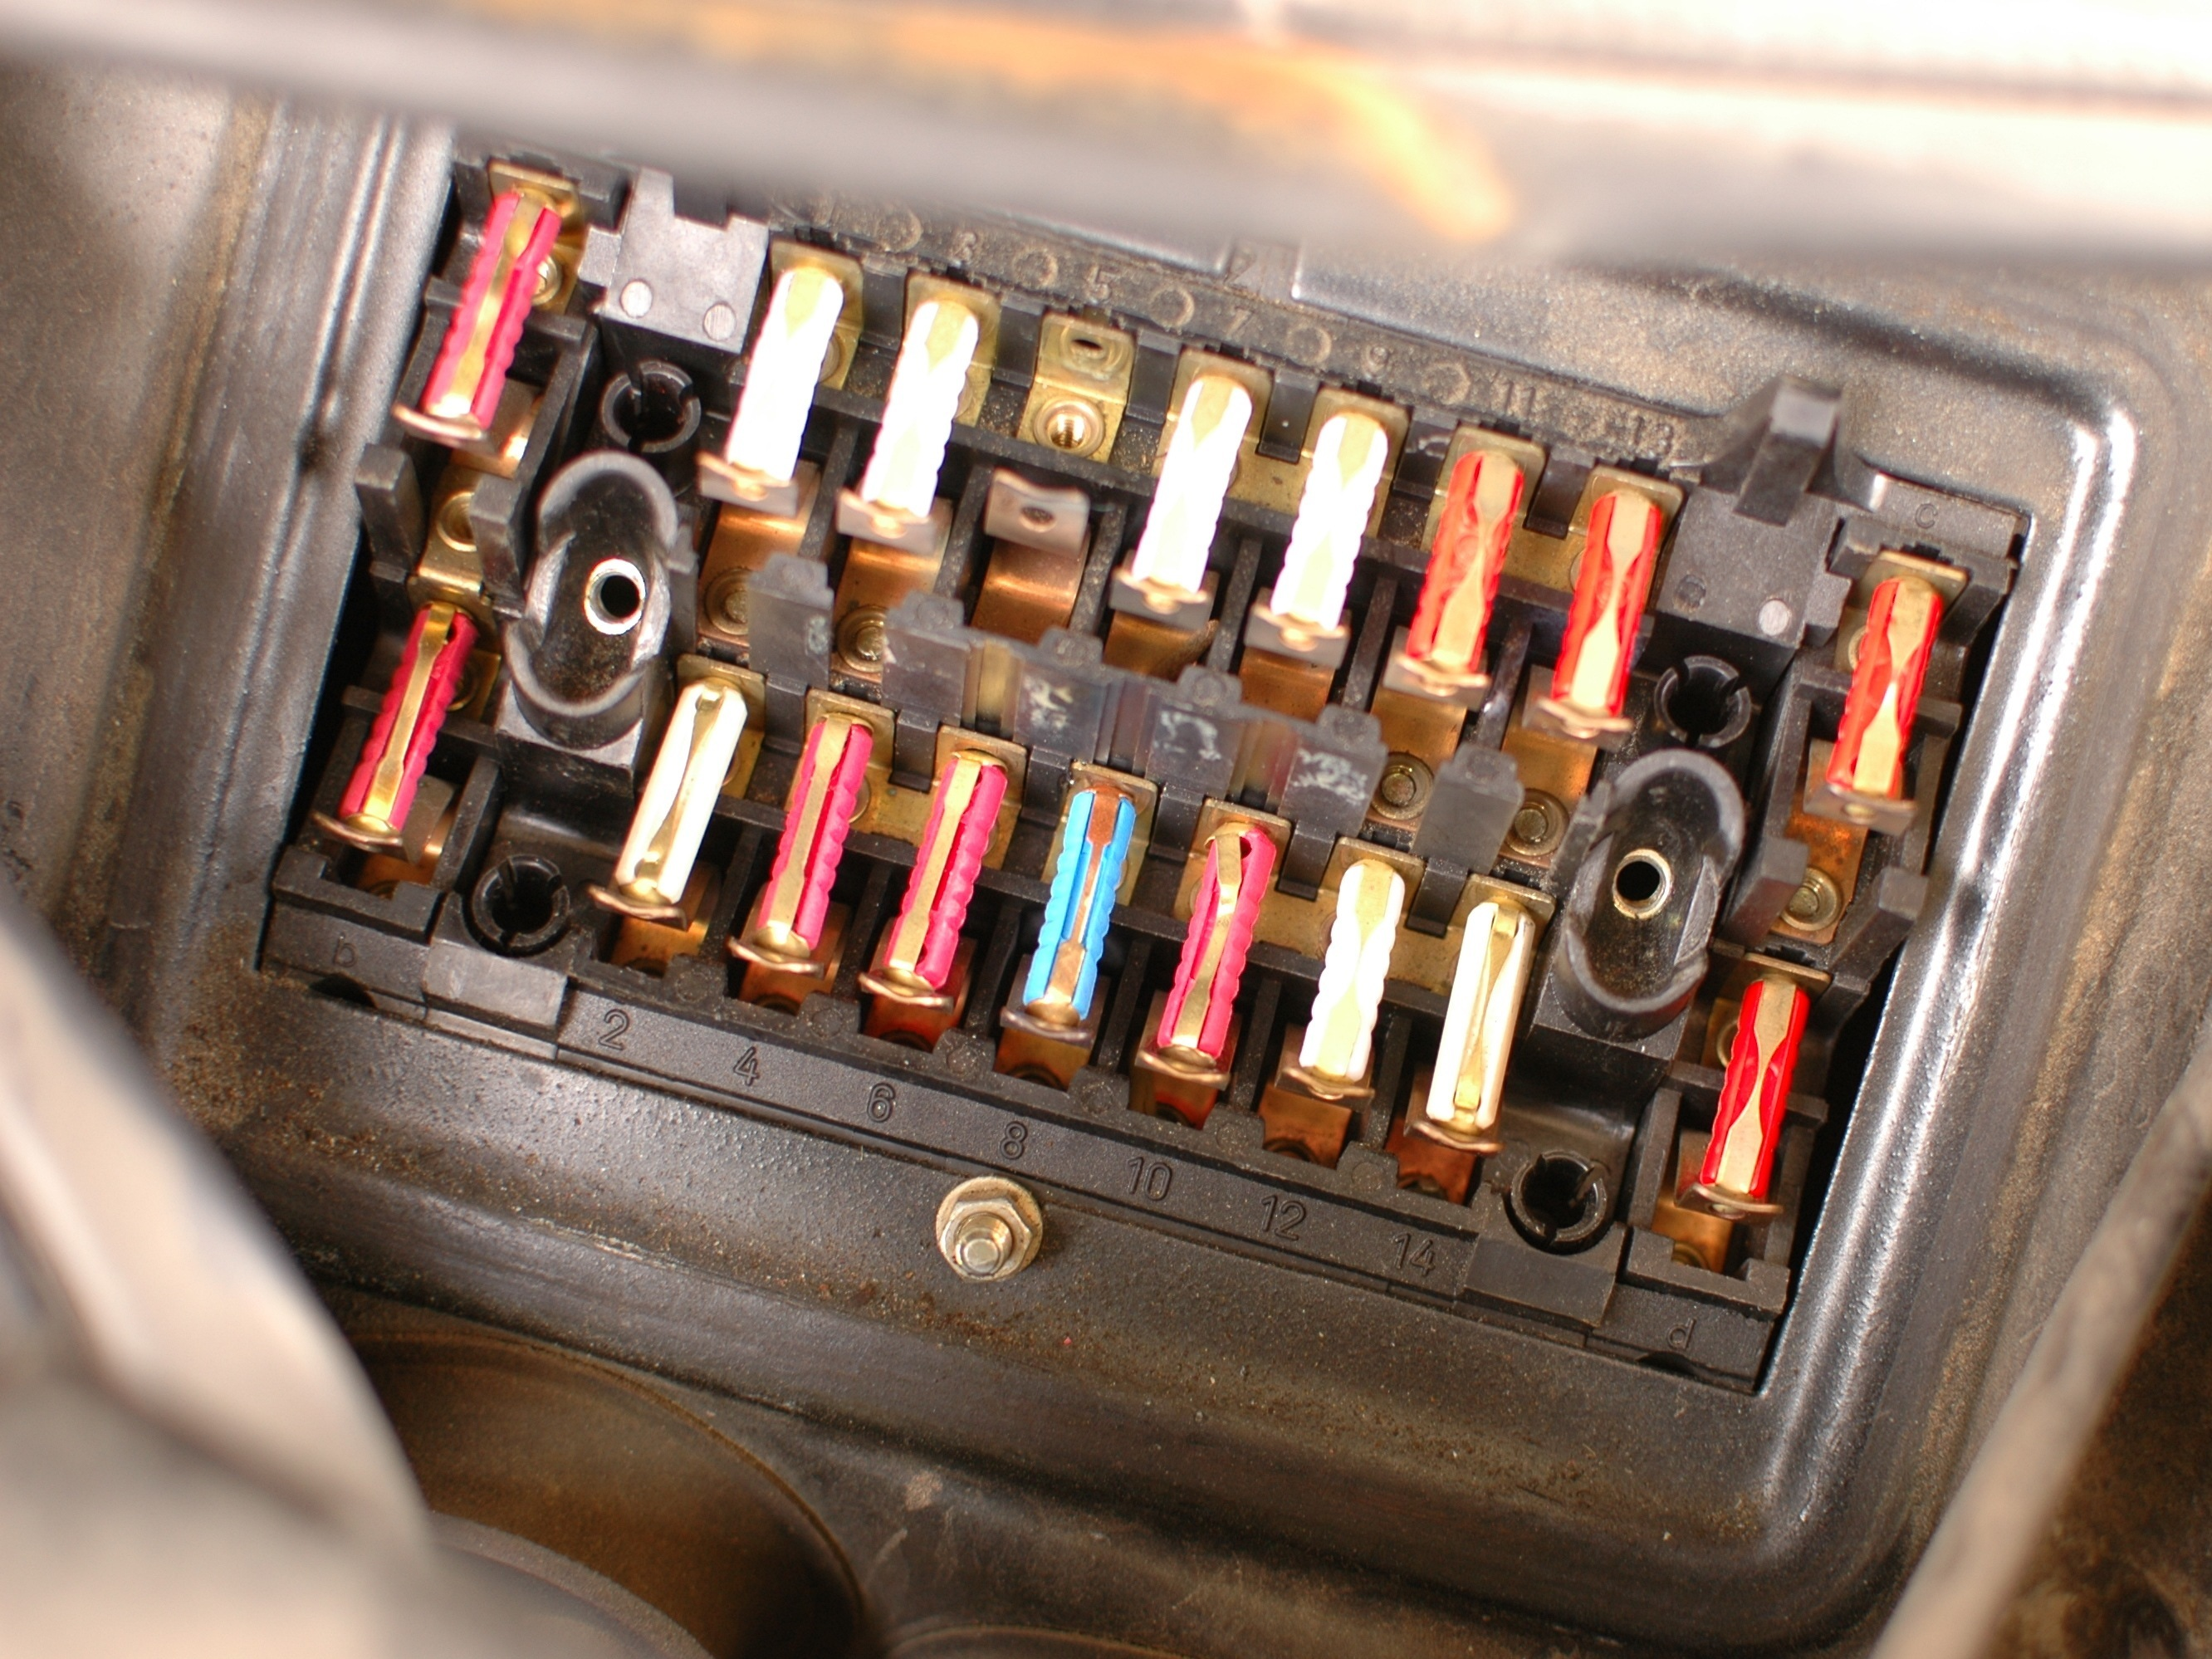 AfYAfmoCaMTVU2ap how to check mercedes w123 fuses ifixit 1978 Mercedes 450SEL at bayanpartner.co